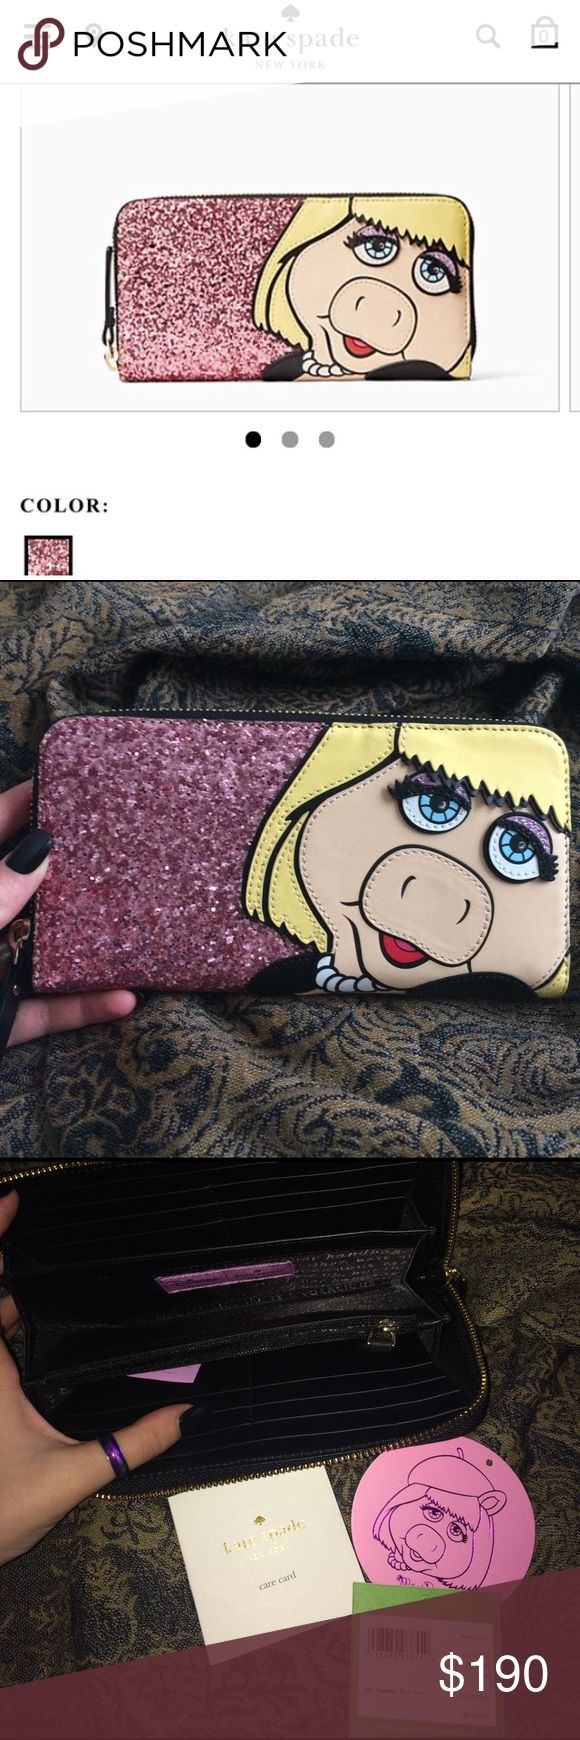 NEW♥️ KATE SPADE WALLET totally ♥️SOLD OUT♥️ in stores ONLY AVAILABLE HERE! 🔮miss piggy collection 🏳️🌈NEVER USED  🍷NEW WITH TAGS ⚰️HUGE discount! 🗝only REASONABLE offers kate spade Bags Wallets